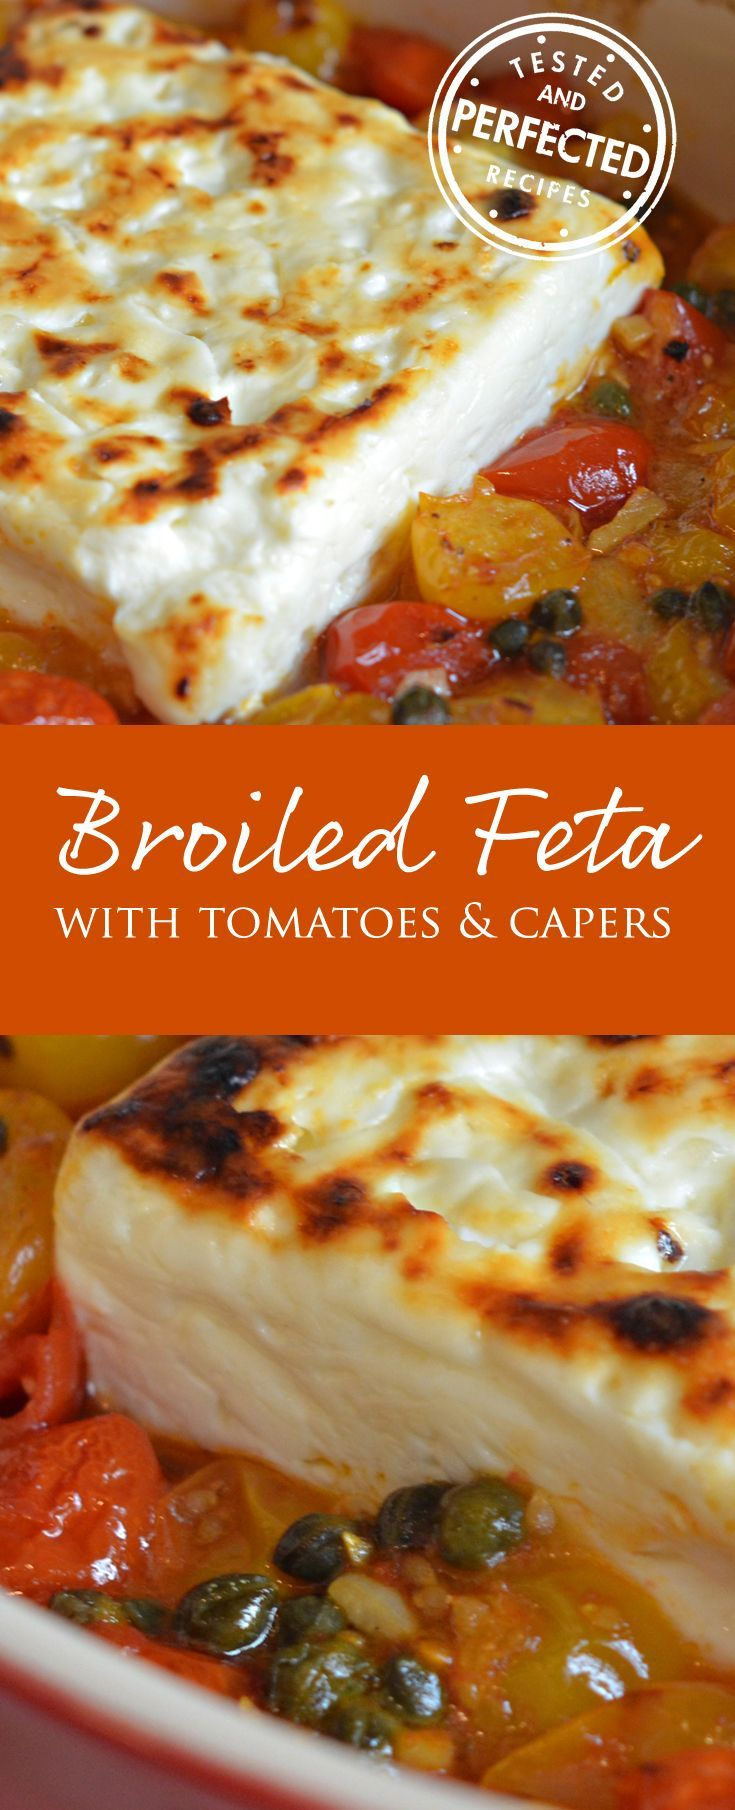 Broiled Feta with Garlicky Cherry Tomatoes & Capers